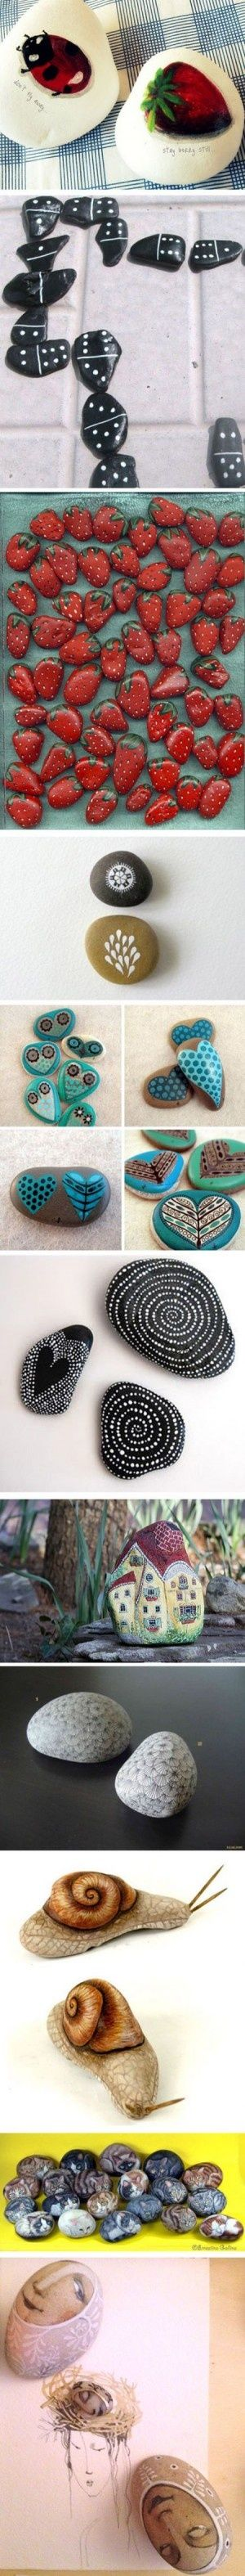 best stenen images on pinterest draw mandalas and gift ideas